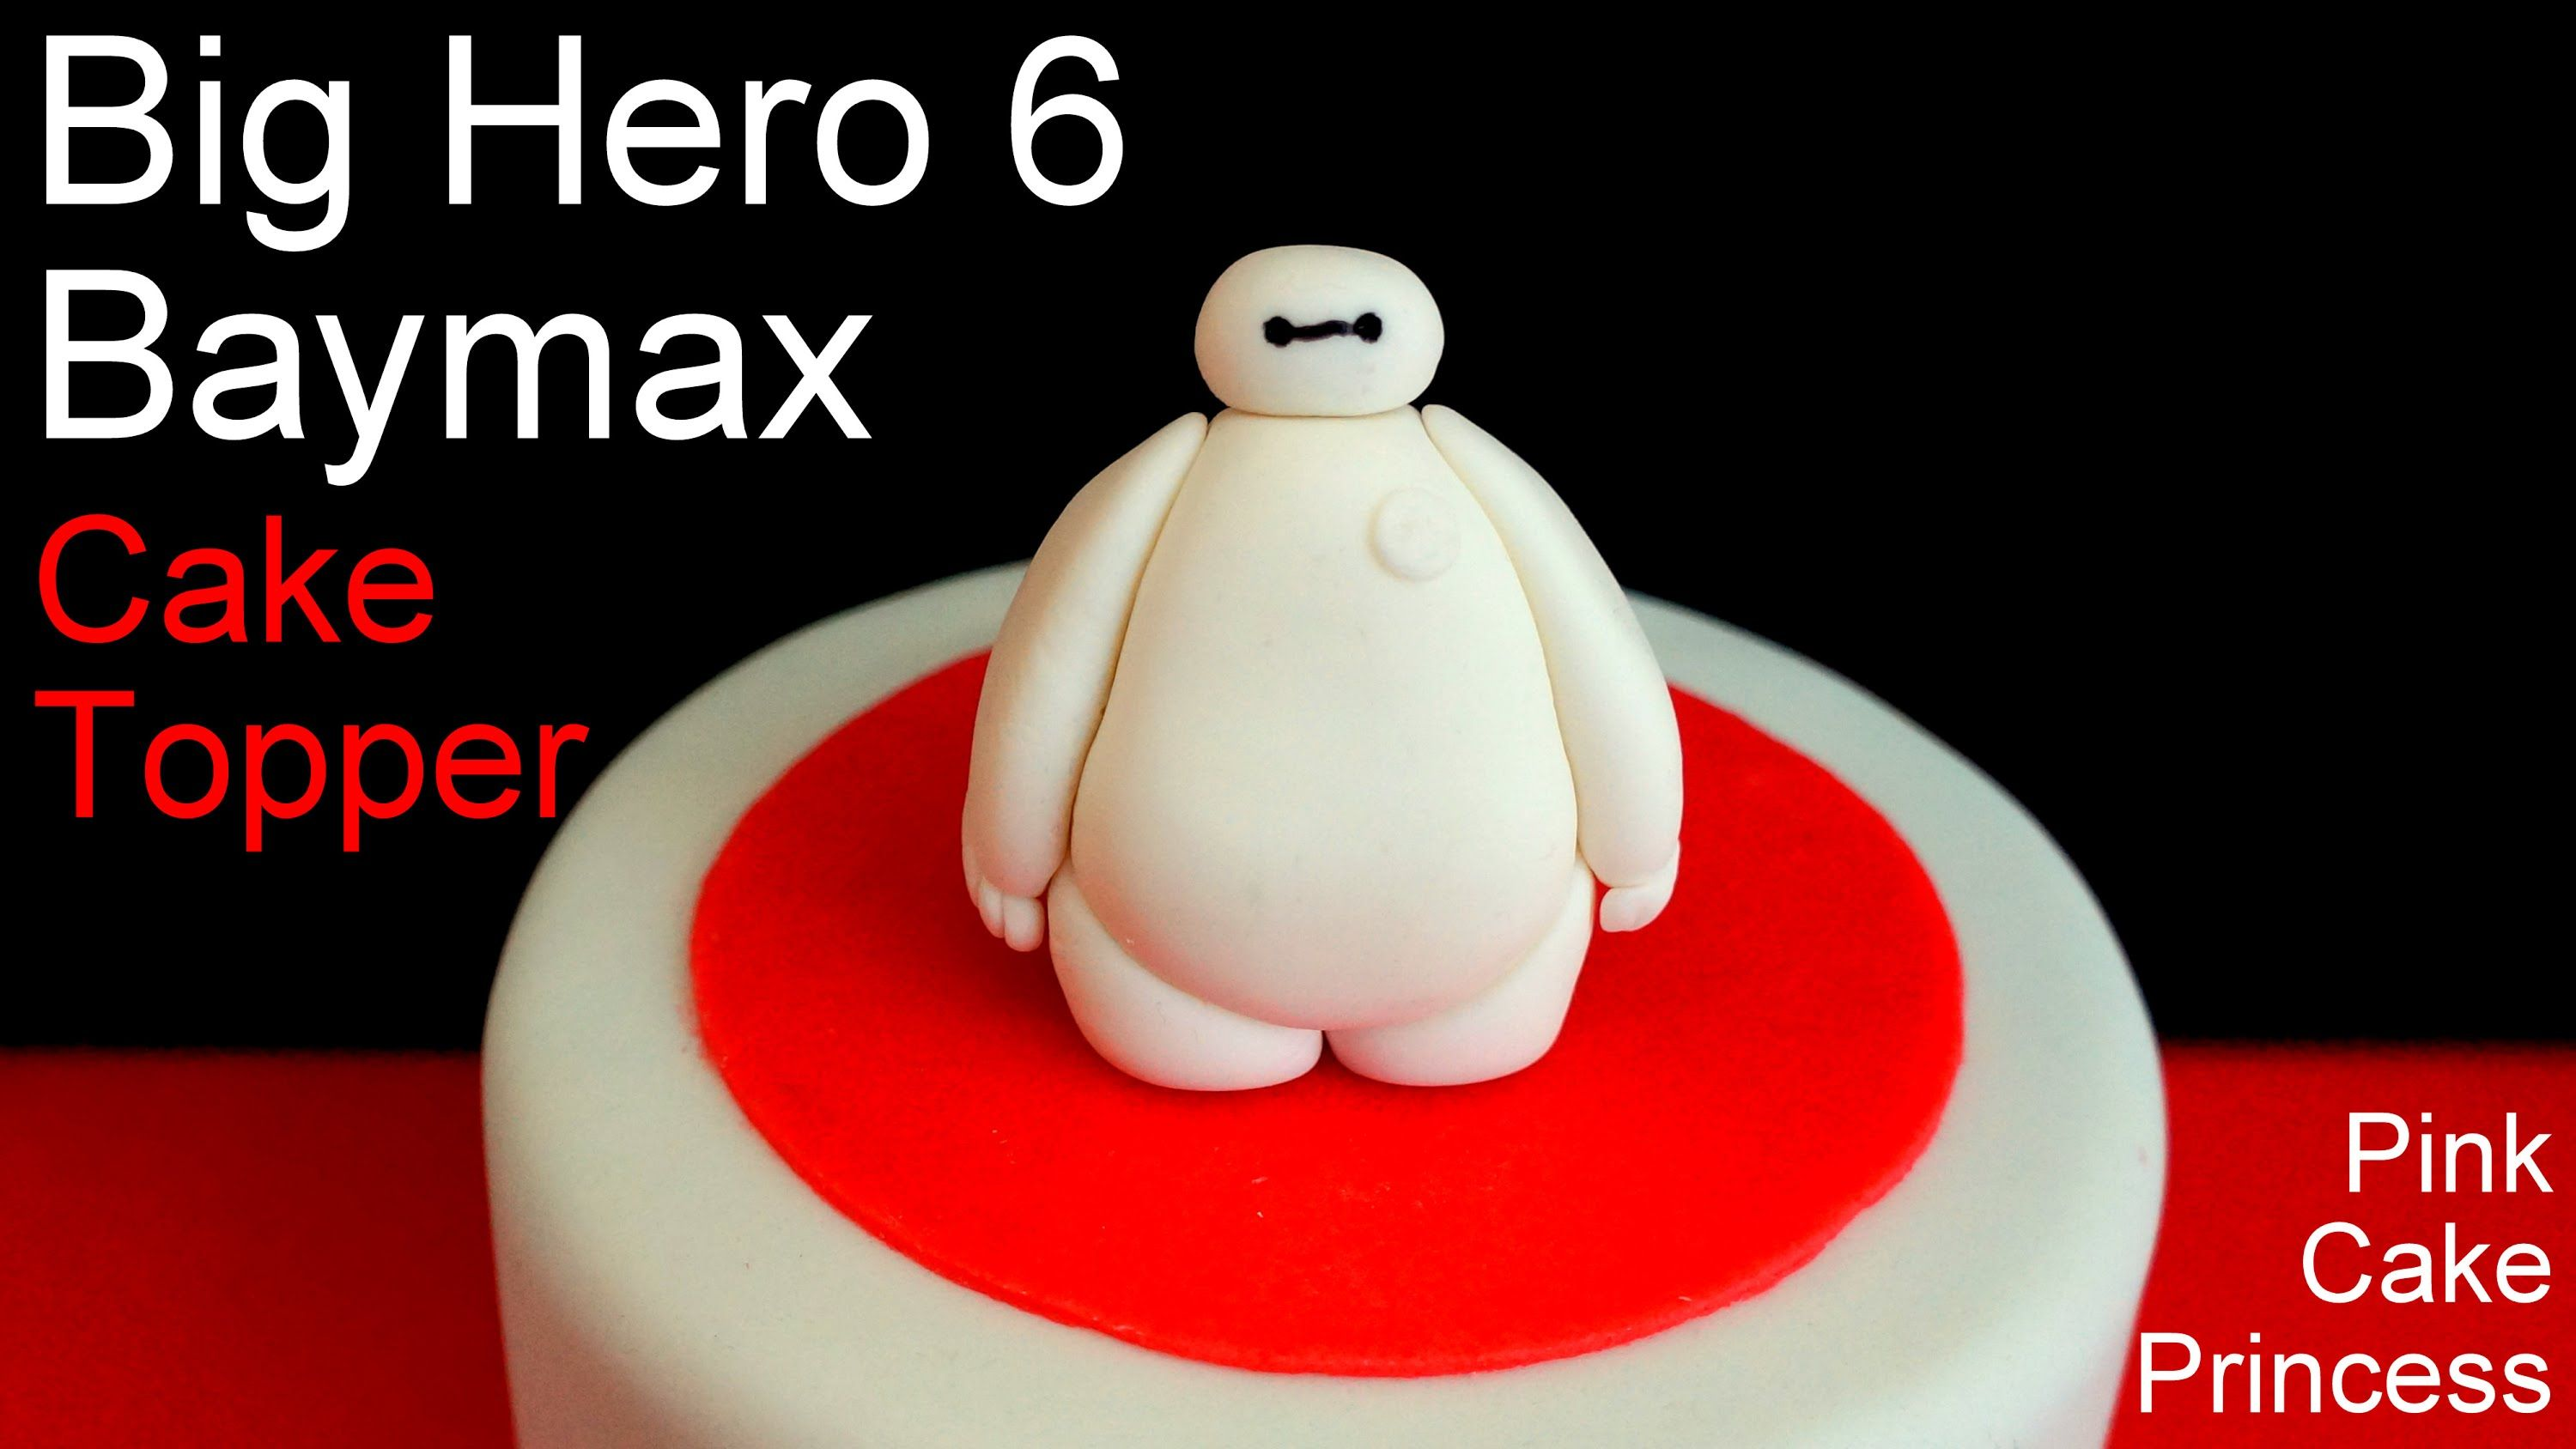 Big Hero 6 Baymax Cake Topper How To By Pink Cake Princess With